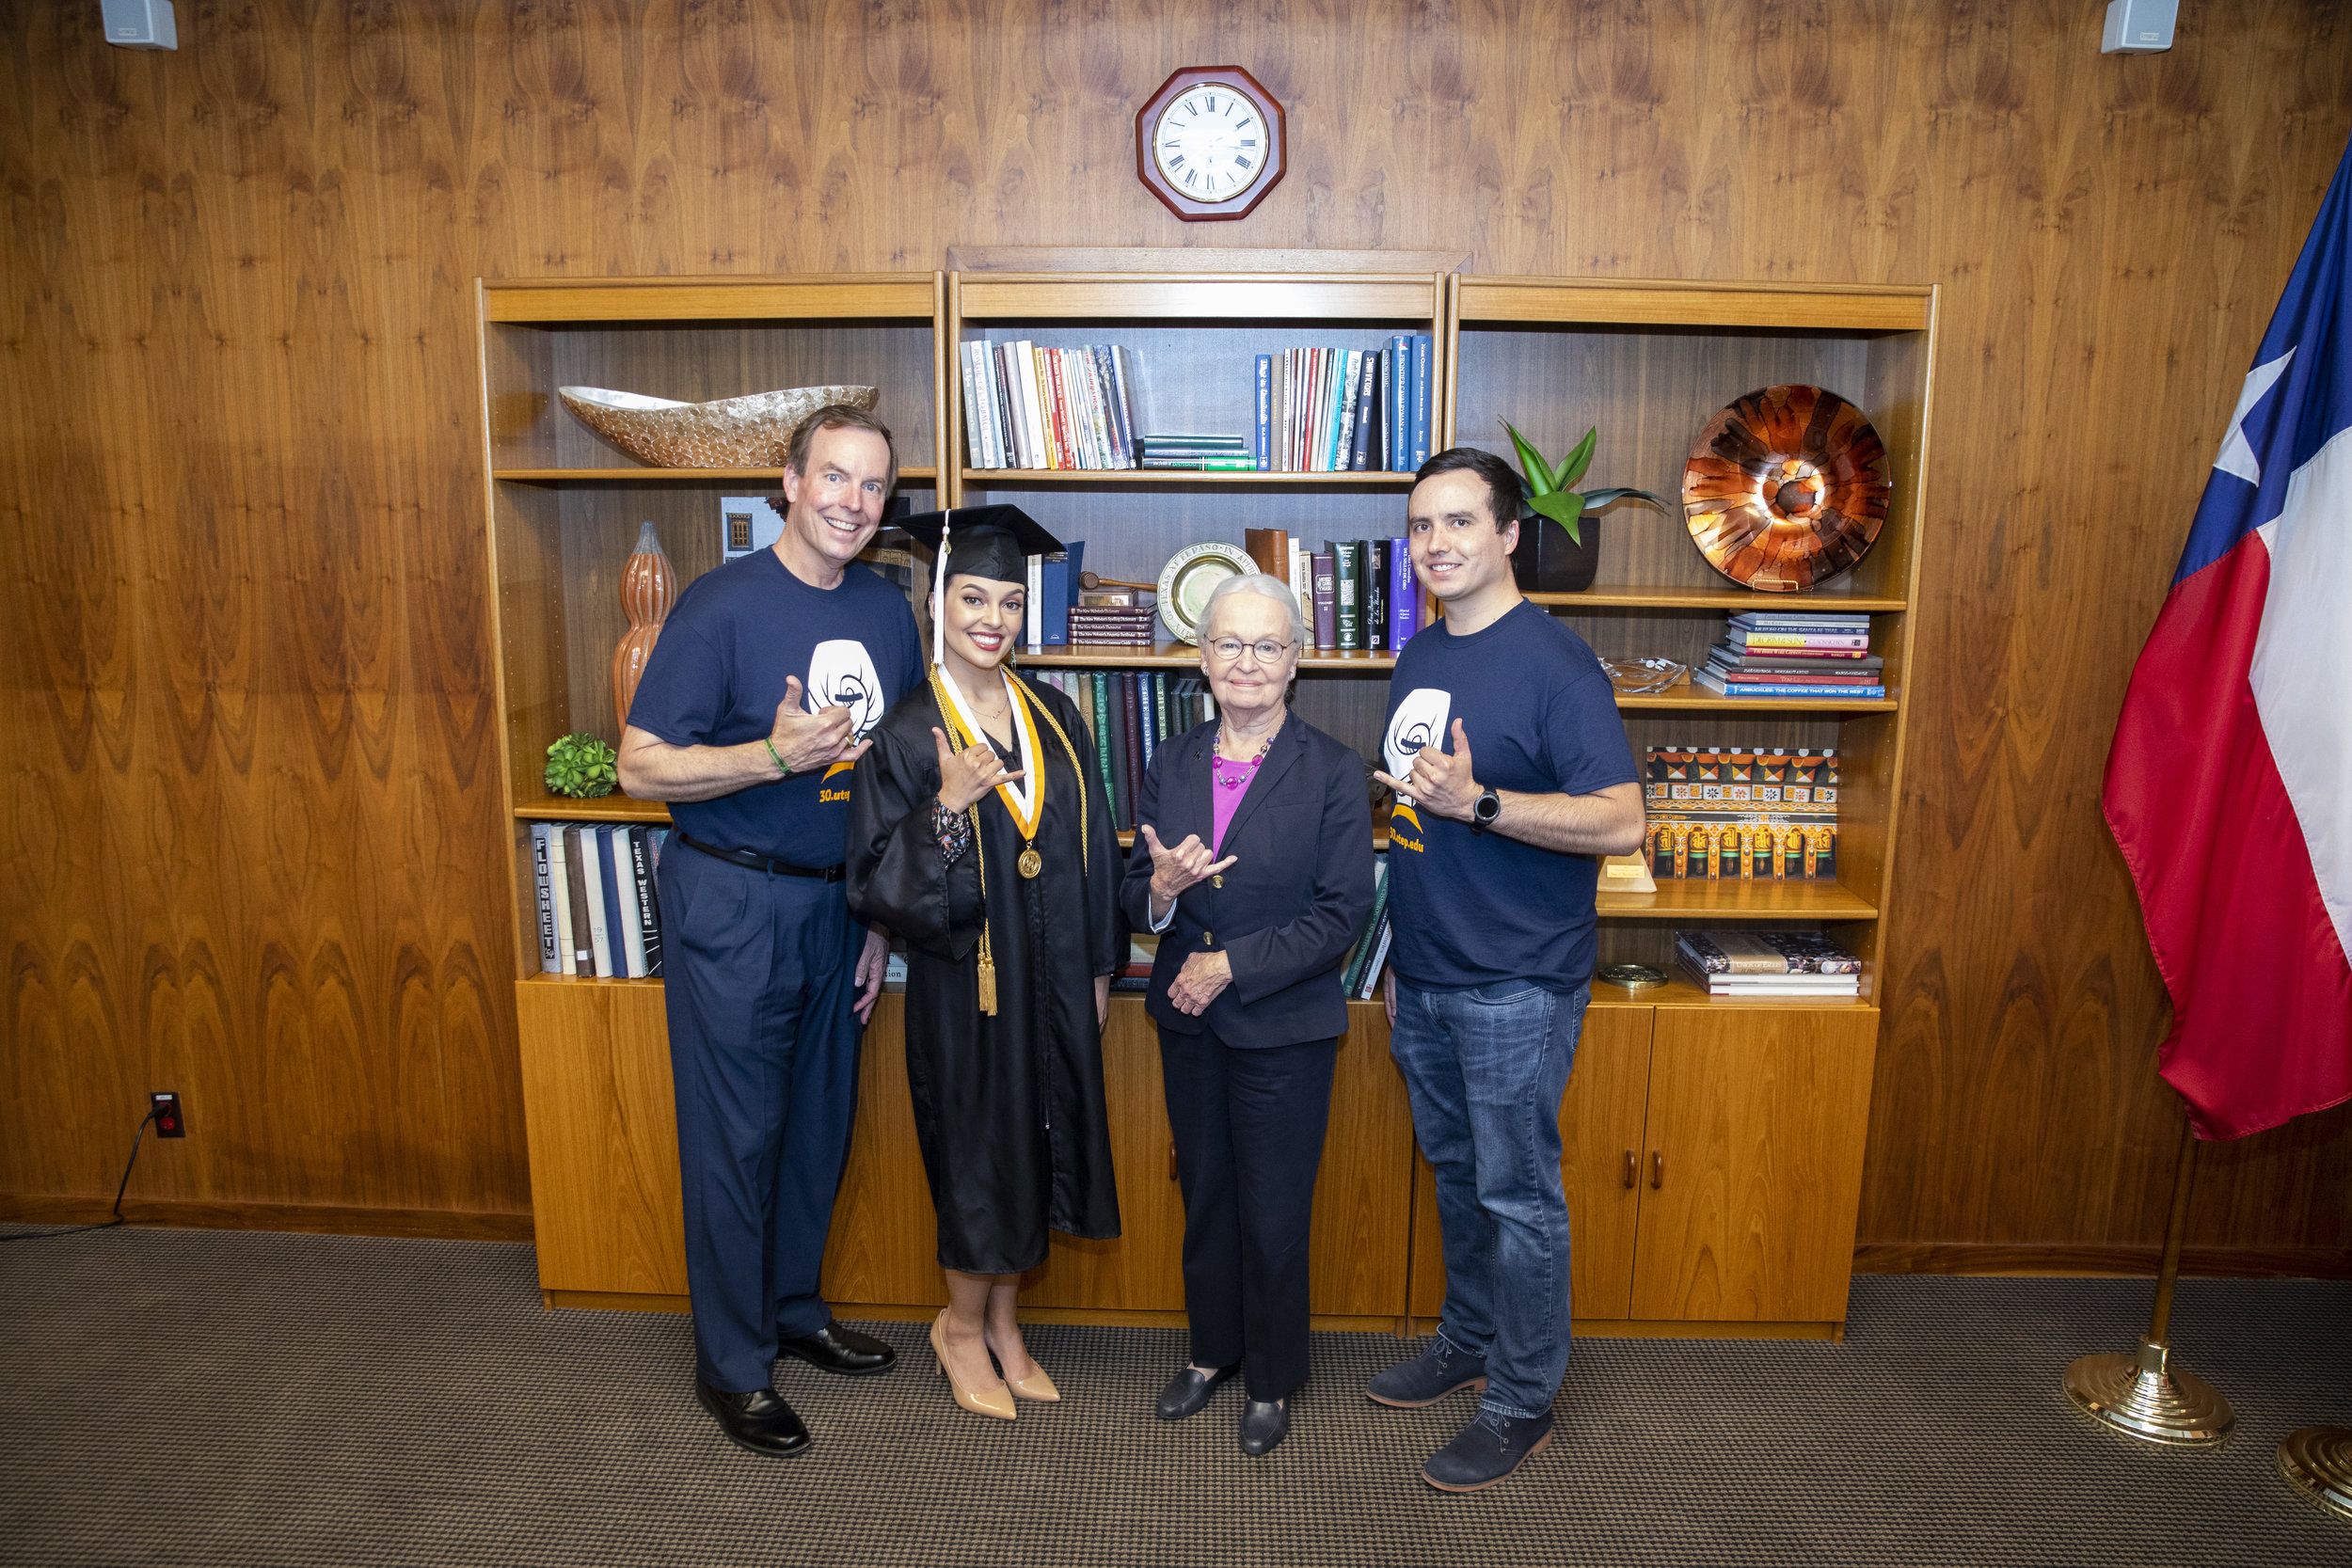 Members of the Hardgrove family, from left, Wallace, Nichole and Joshua, participated in several significant Commencement exercises with UTEP President Diana Natalicio, center right, during her 31 years as leader of the University. Photo by Ivan Pierre Aguirre